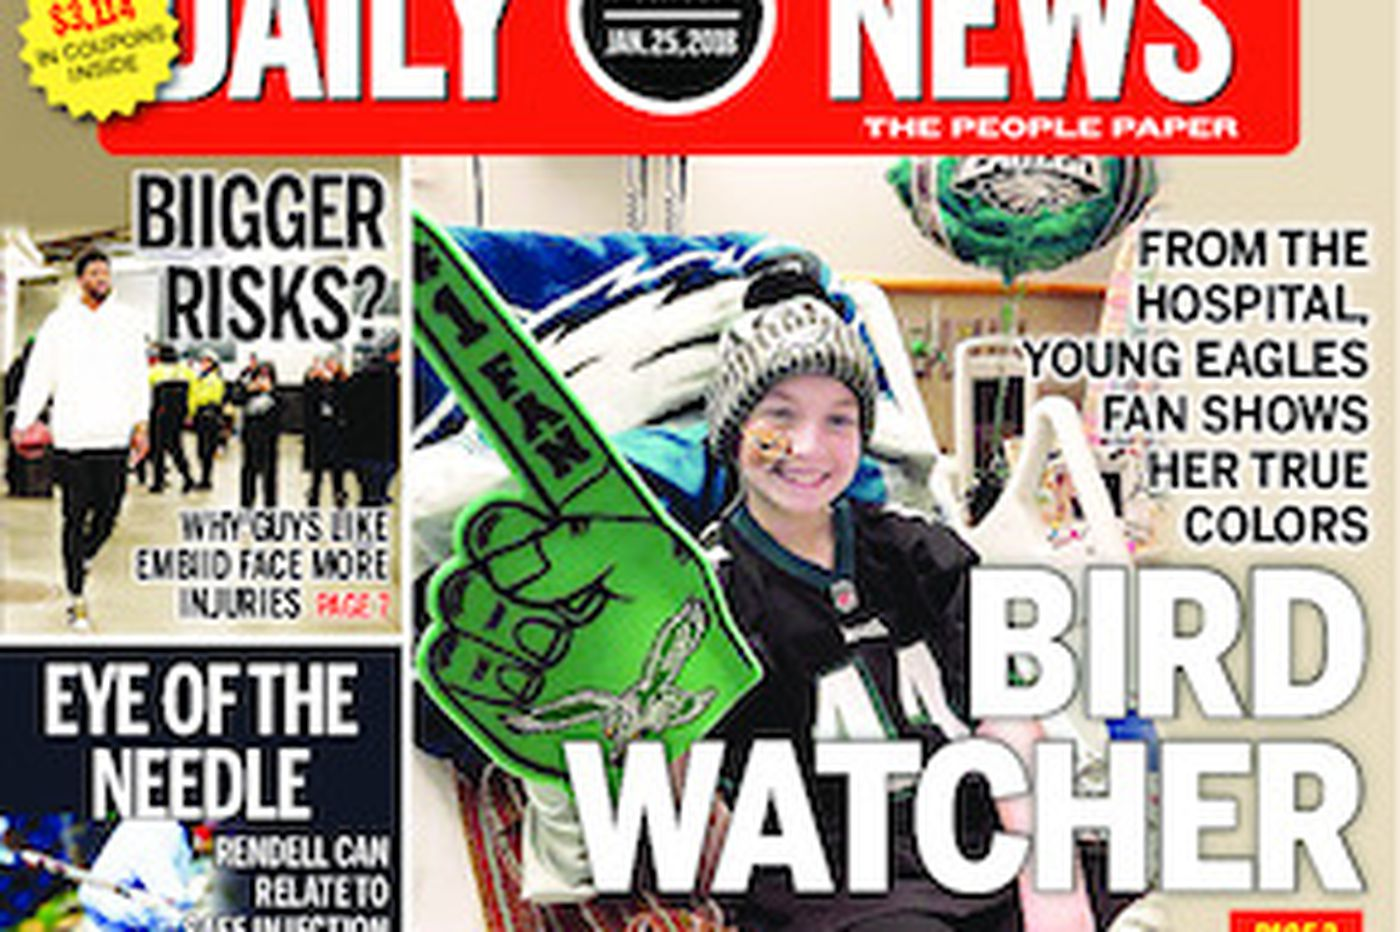 Dailynews Monthly Covers 01/25/18